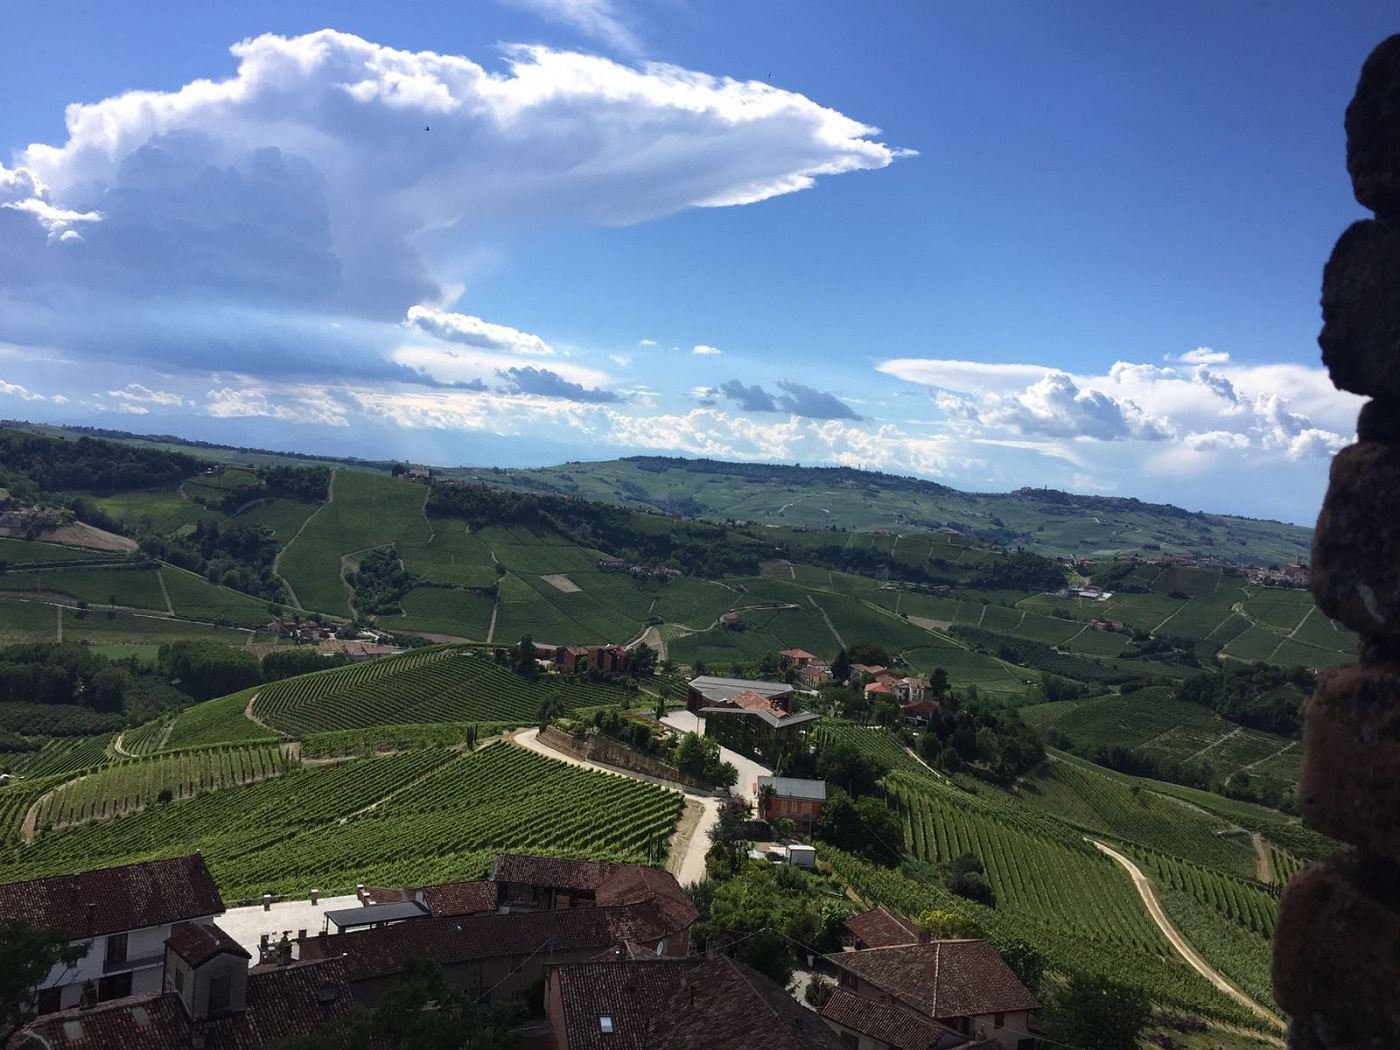 Monforte from above